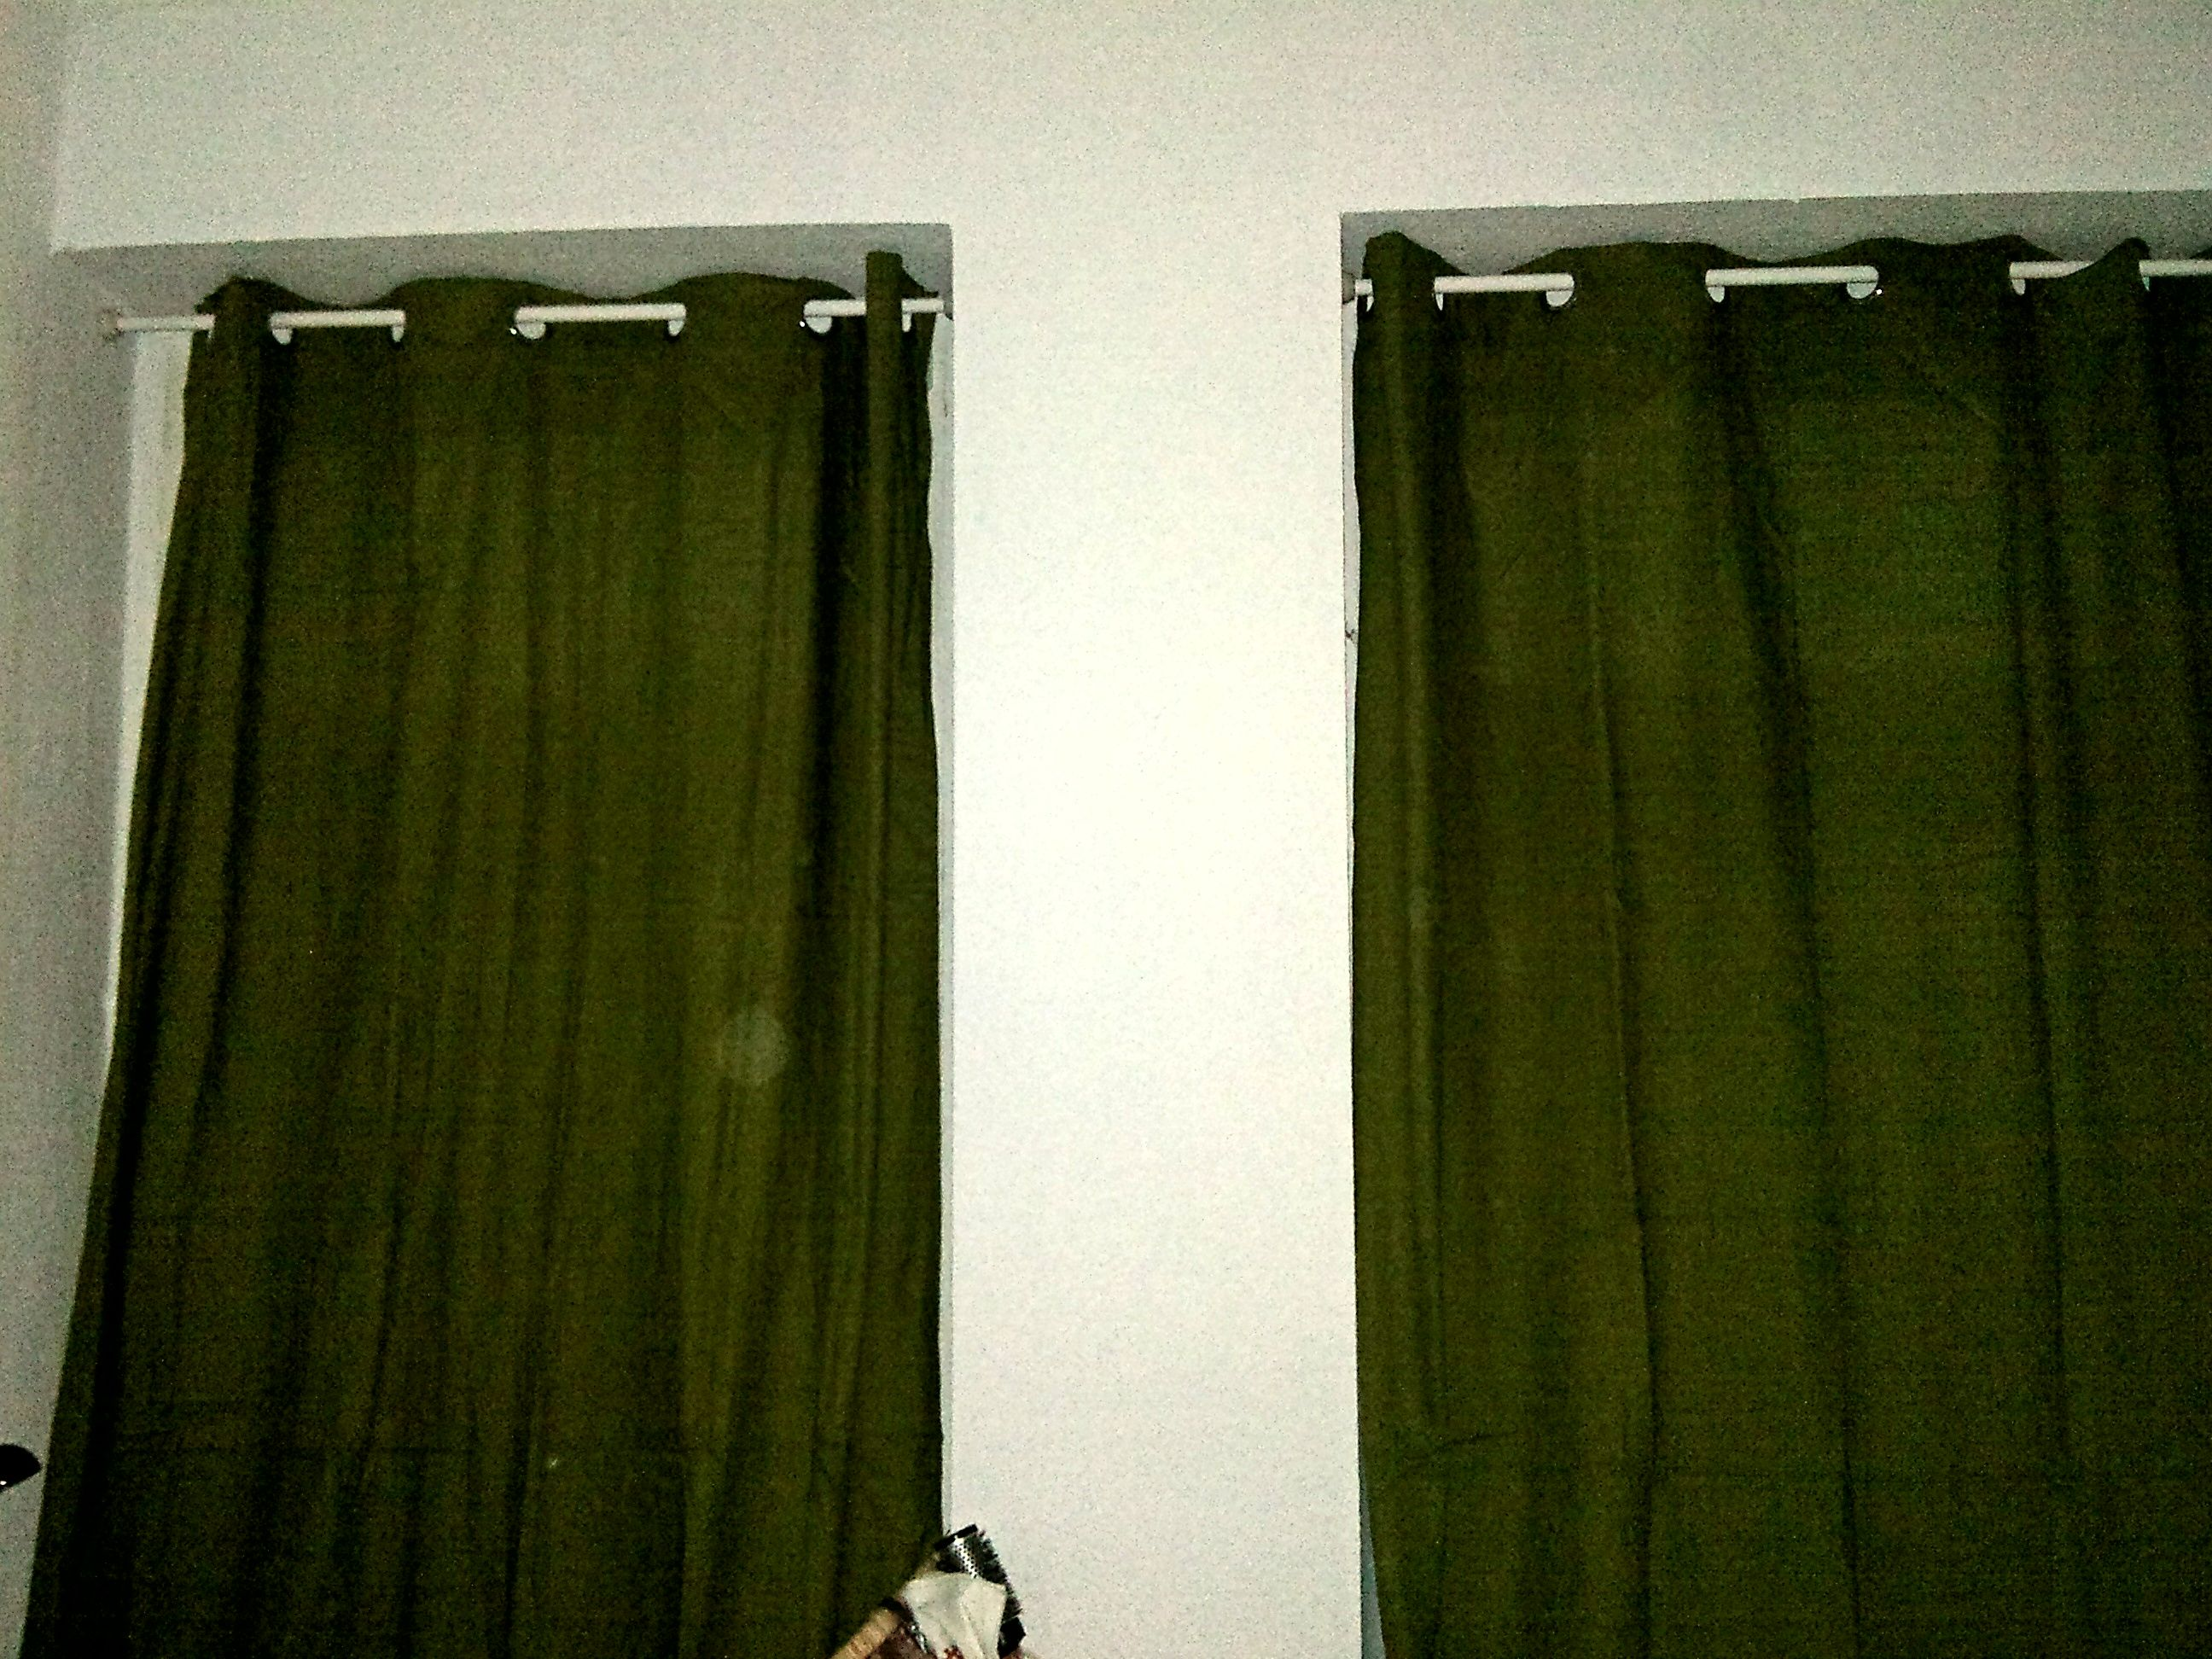 Hanging Curtains Without Drilling With Ore Shower Curtain Rod